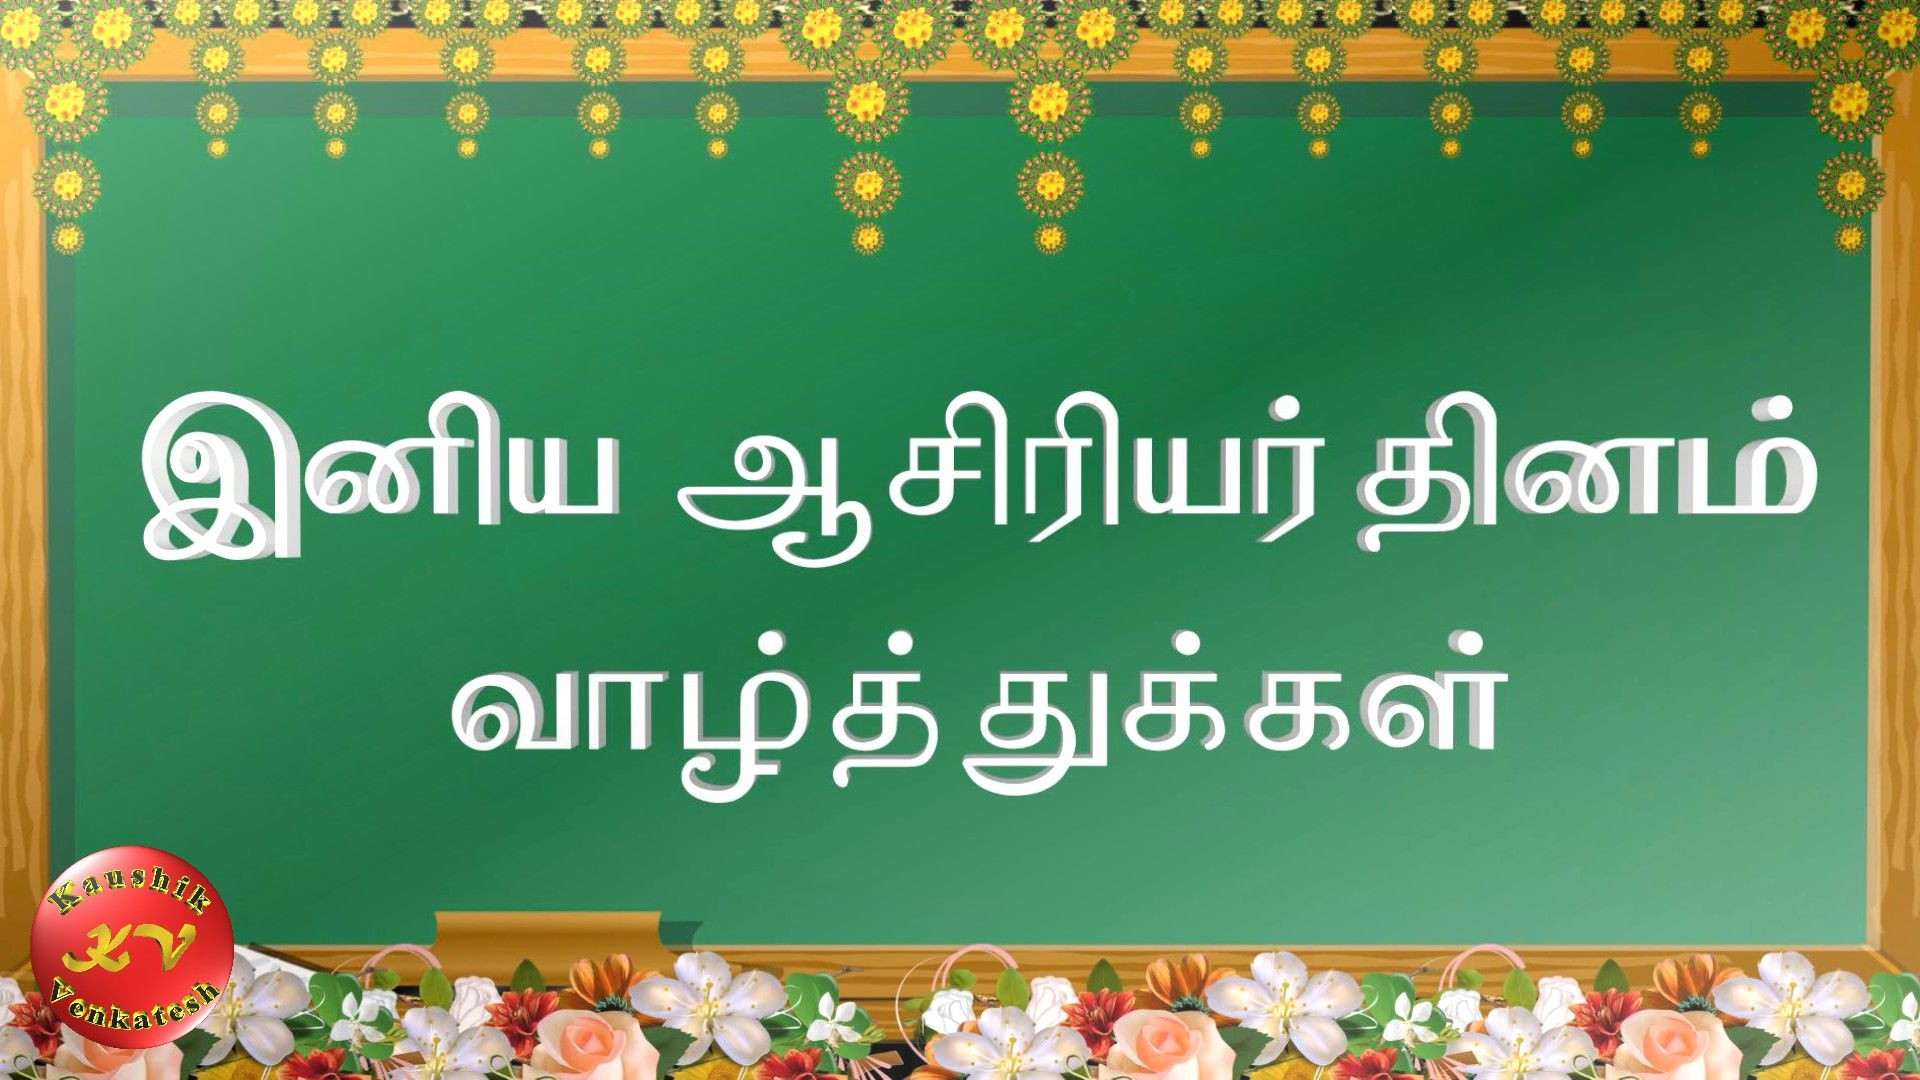 Happy Teachers Day Wishes In Tamil Whatsapp Status Video Message In 2020 Teachers Day Wishes Happy Teachers Day Wishes Happy Teachers Day